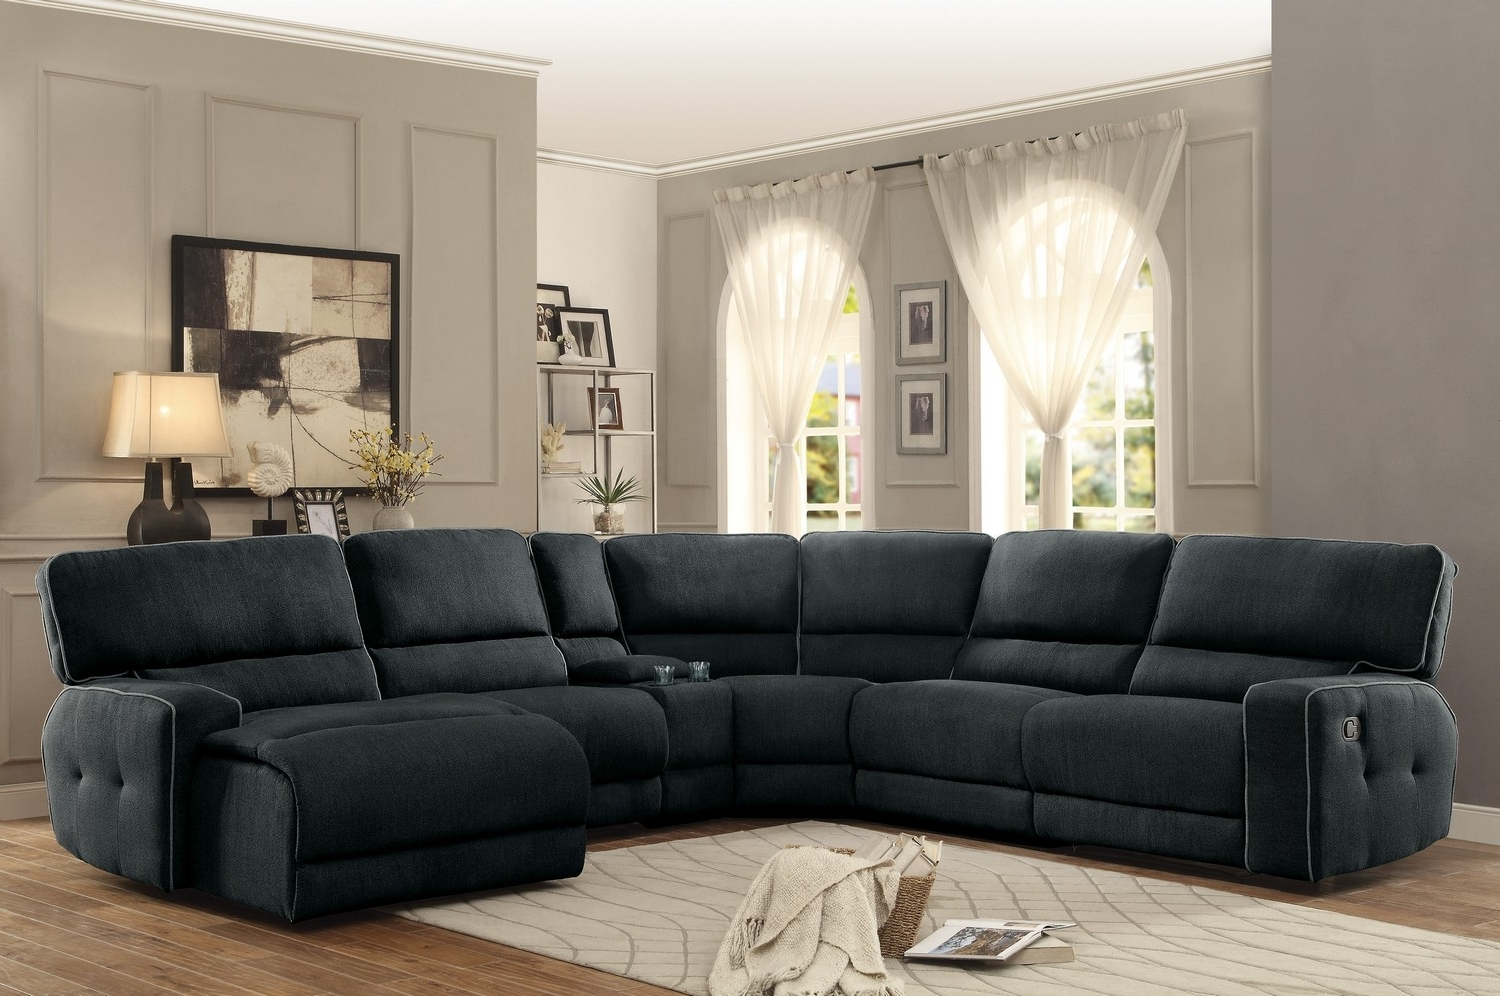 Dallas Sectional Sofas Regarding Popular Homelegance Keamey Reclining Sectional Sofa Set A – Polyester (View 8 of 20)